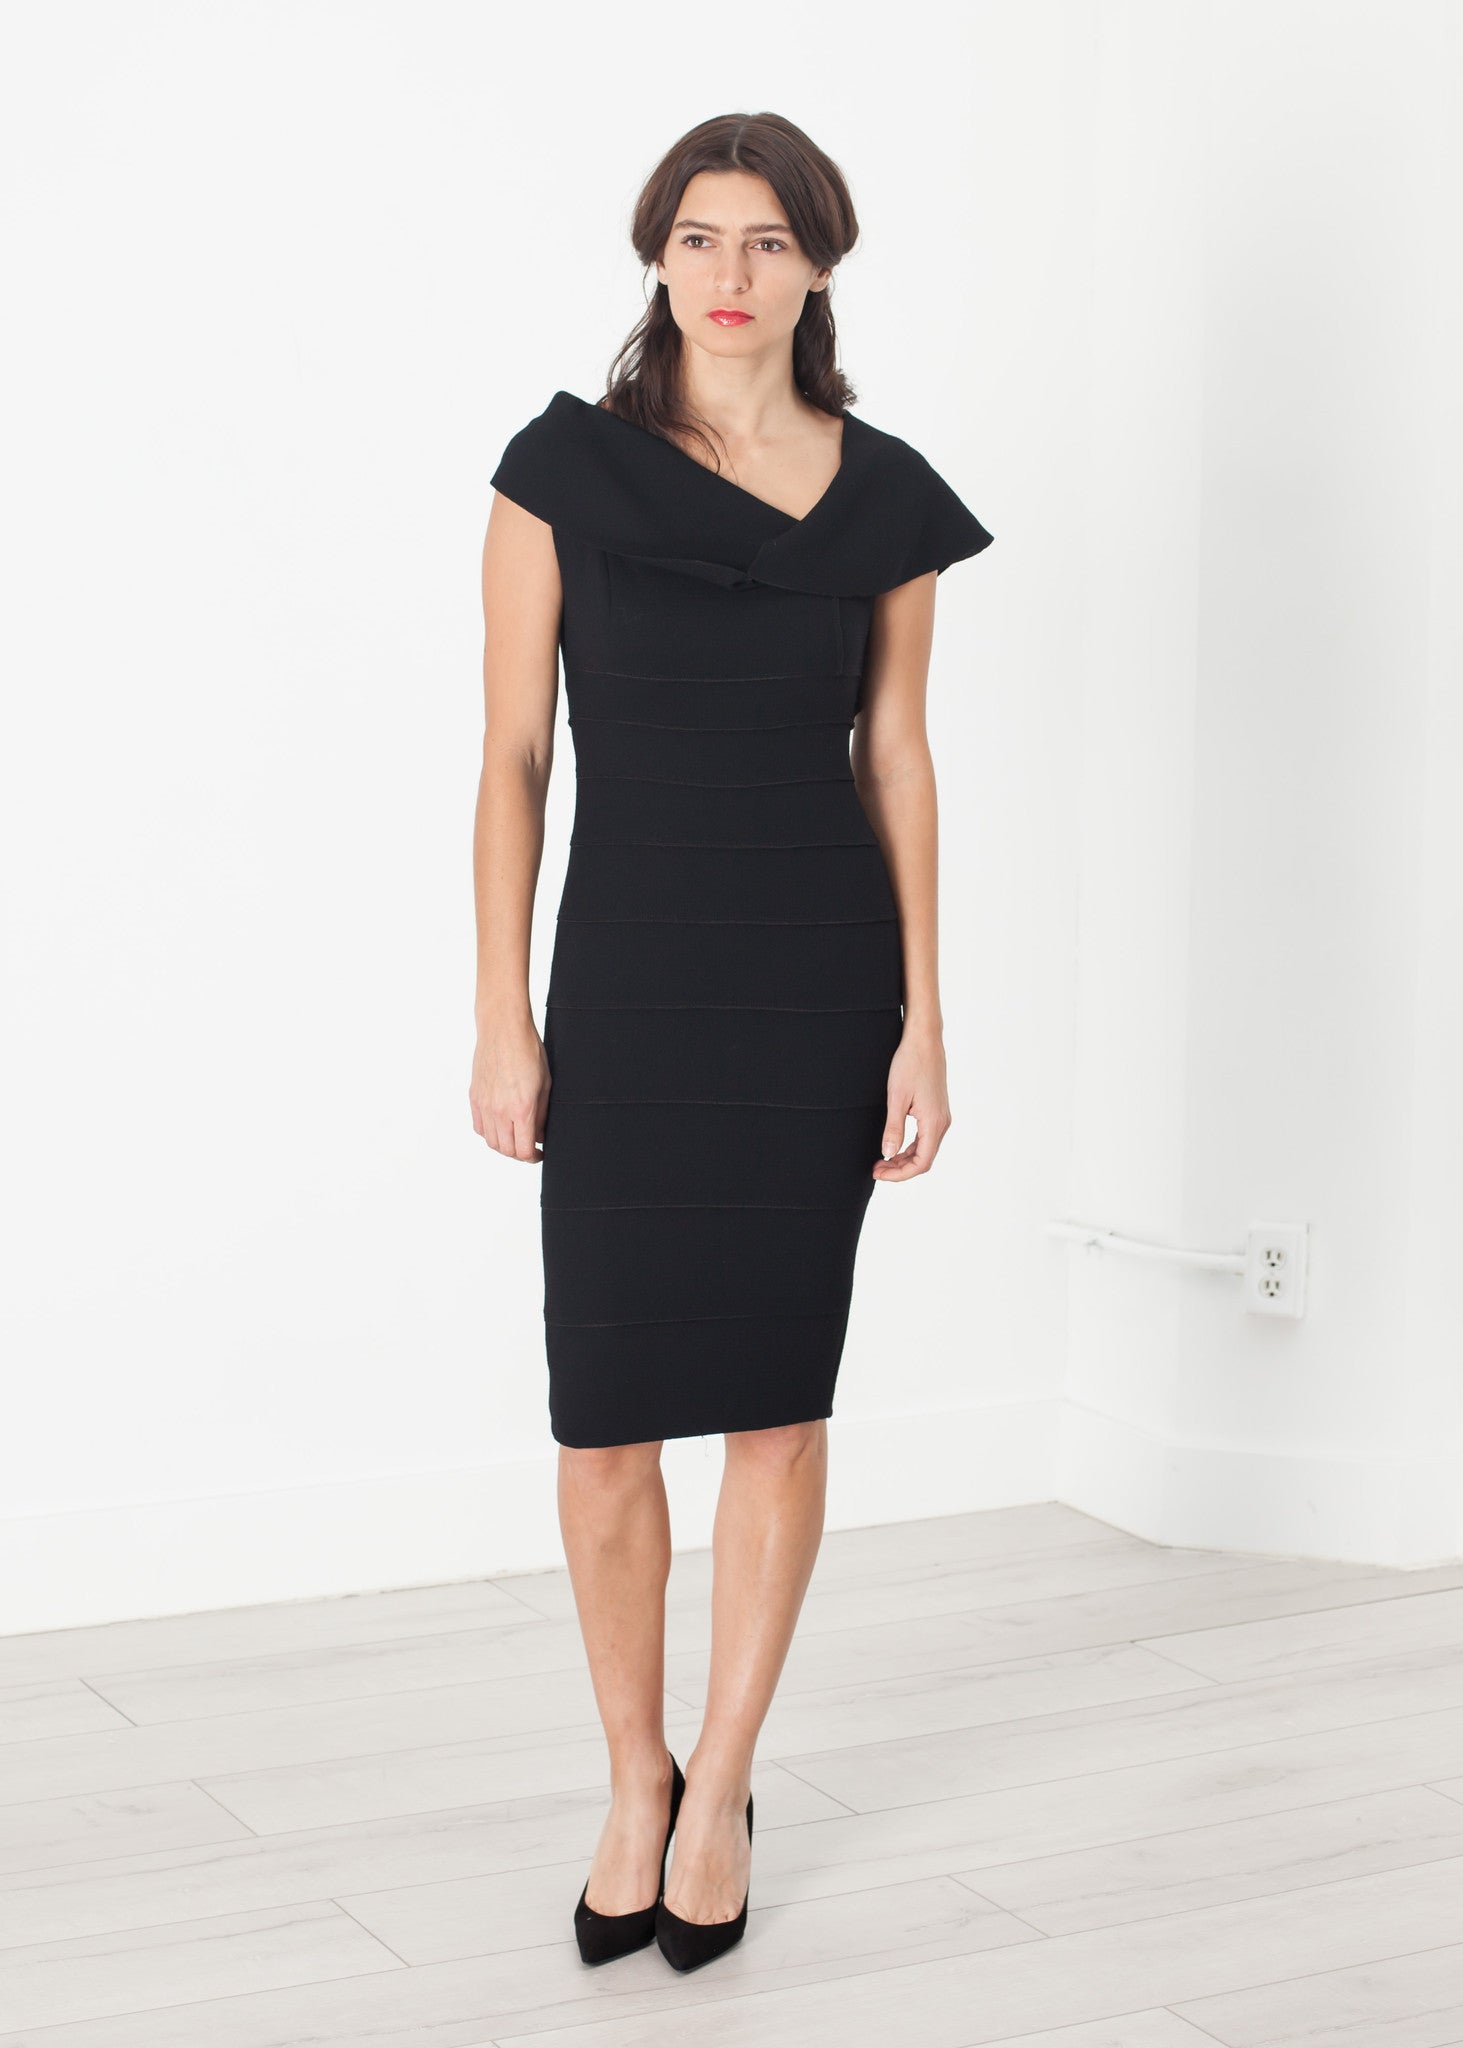 Asymmetric Dress in Black